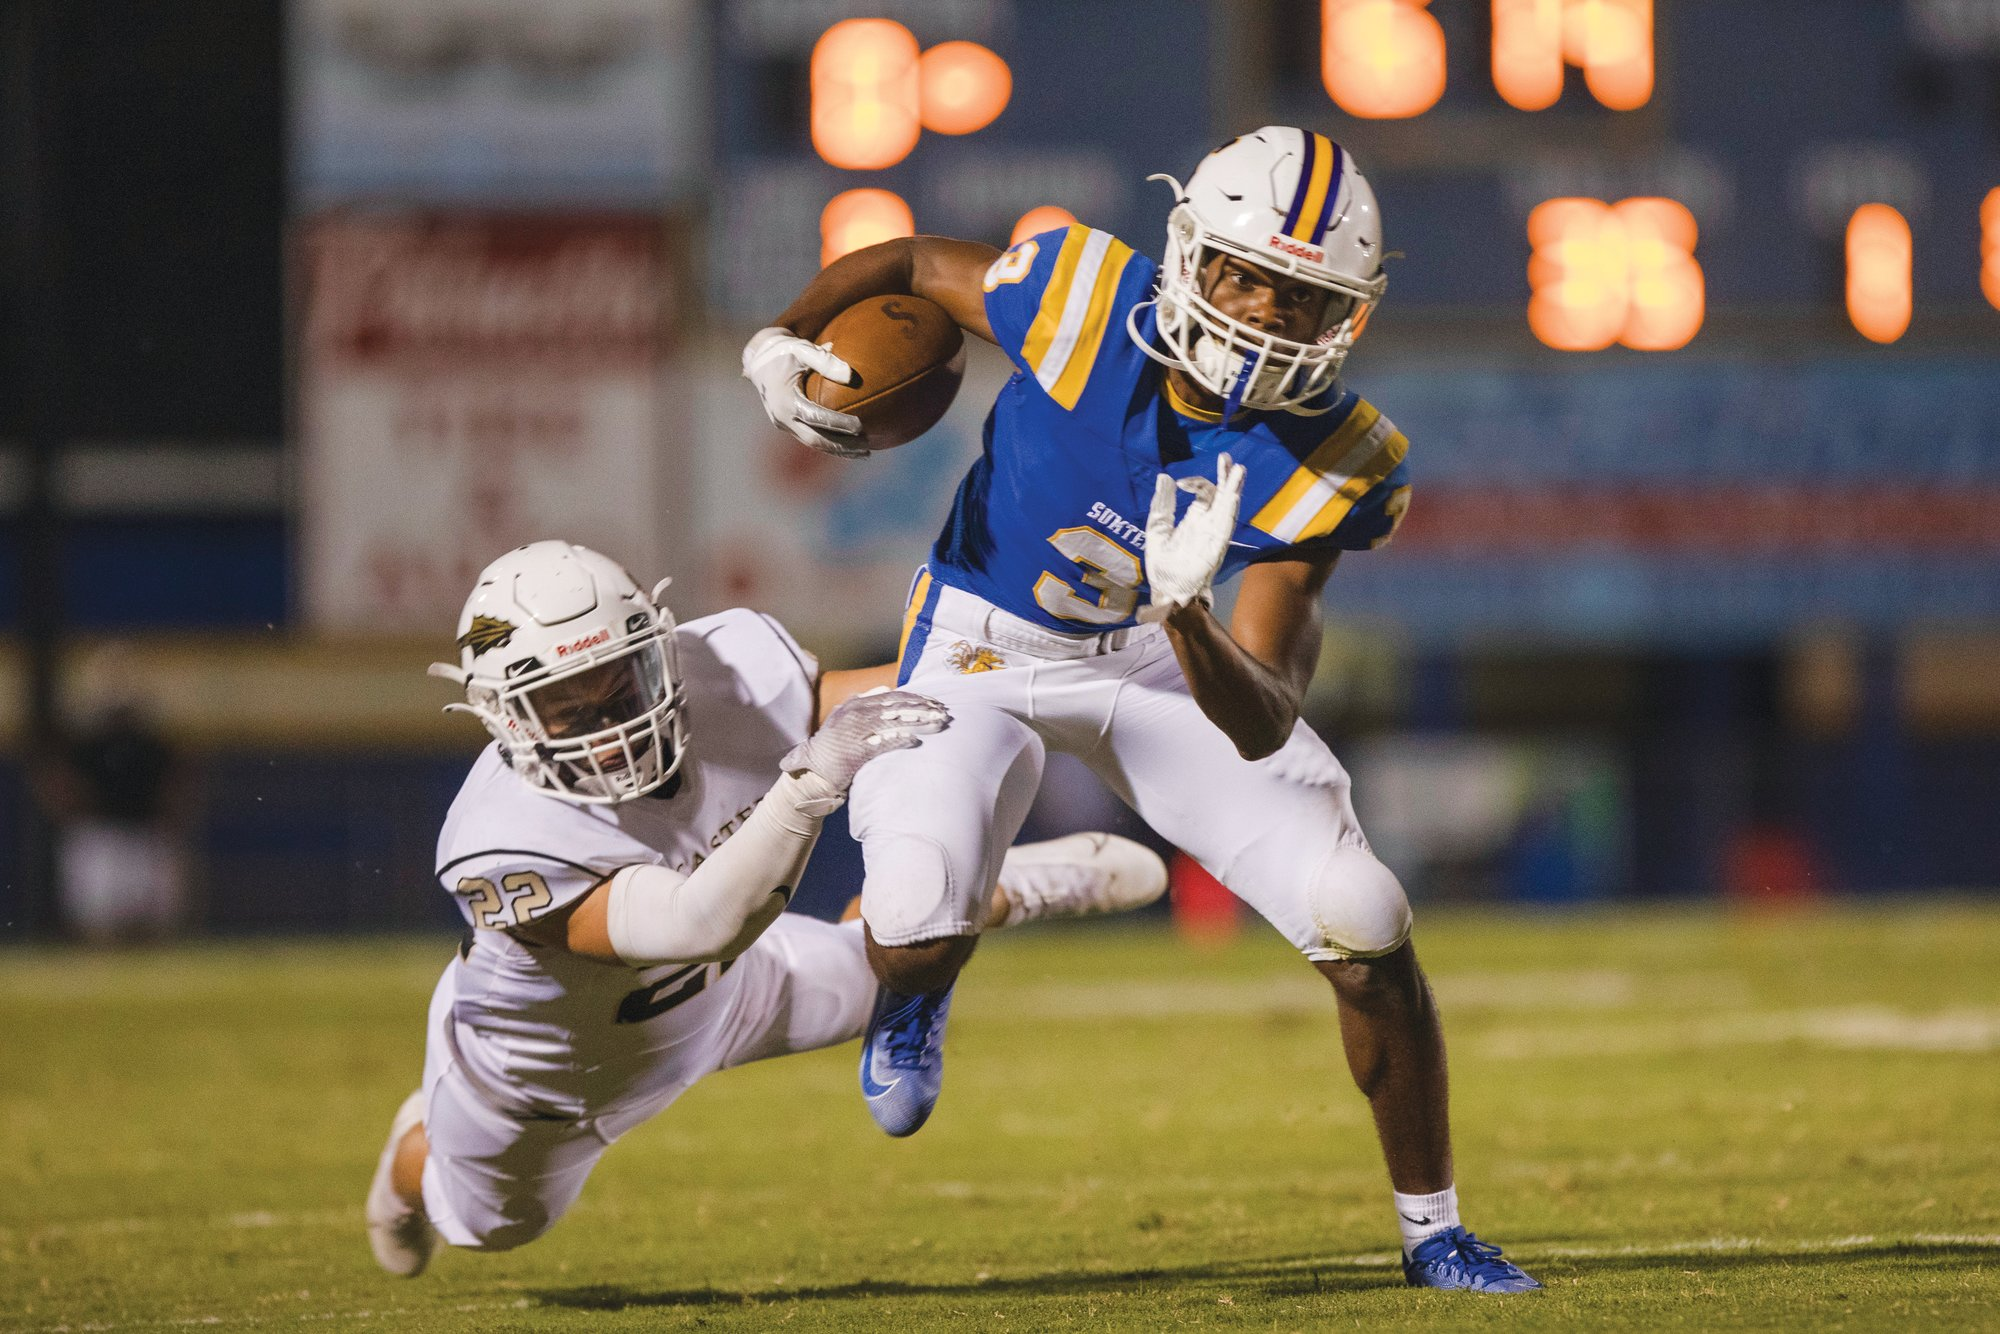 Sumter running back Keion Brown (3) and the Gamecocks will host St. James as they attempt to claim the Region VI-5A crown on Friday.